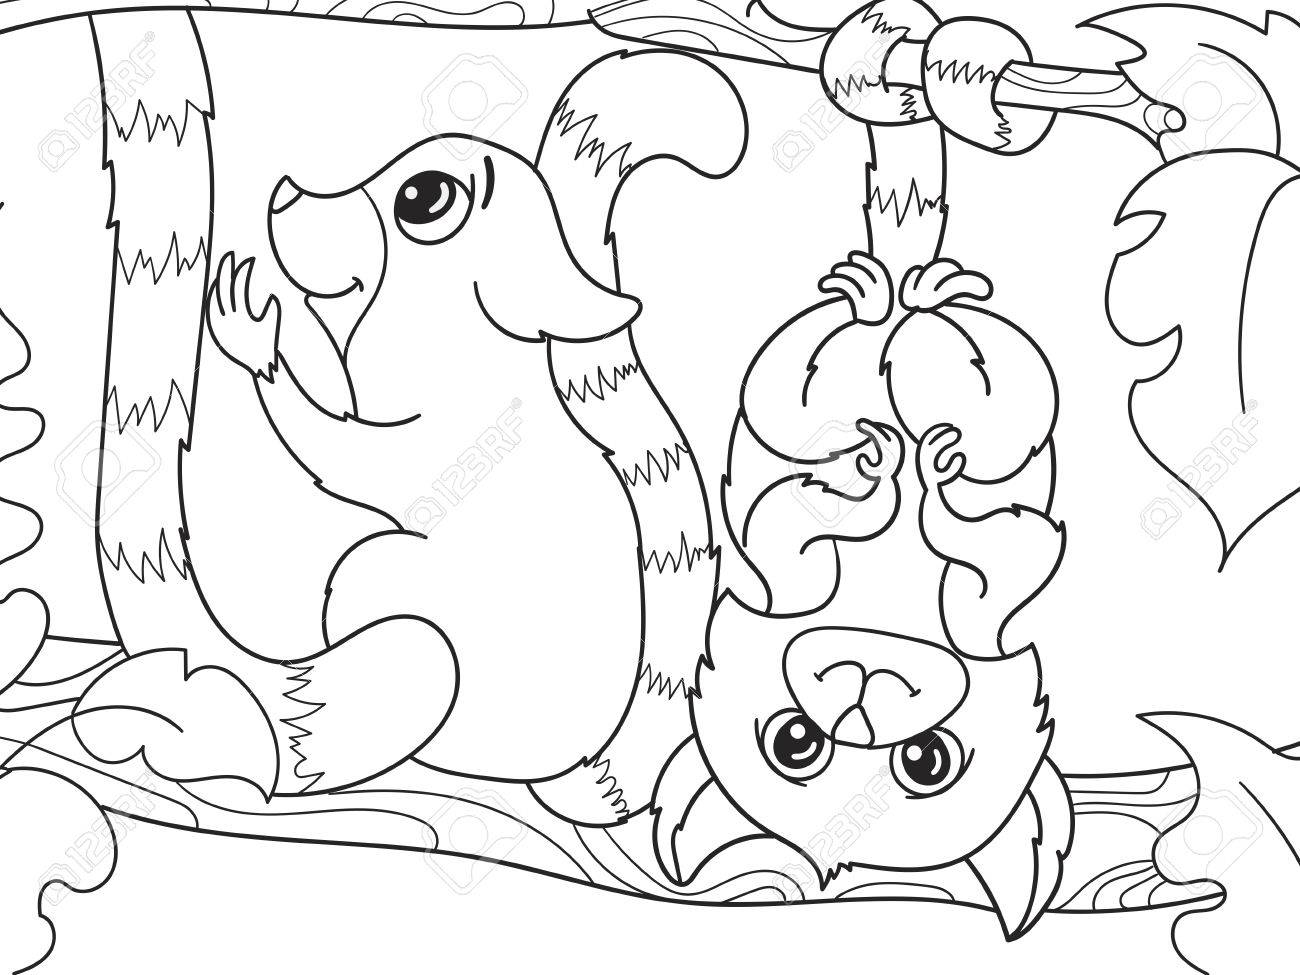 Childrens Coloring Book Cartoon Family Of Lemurs On Nature. For ...